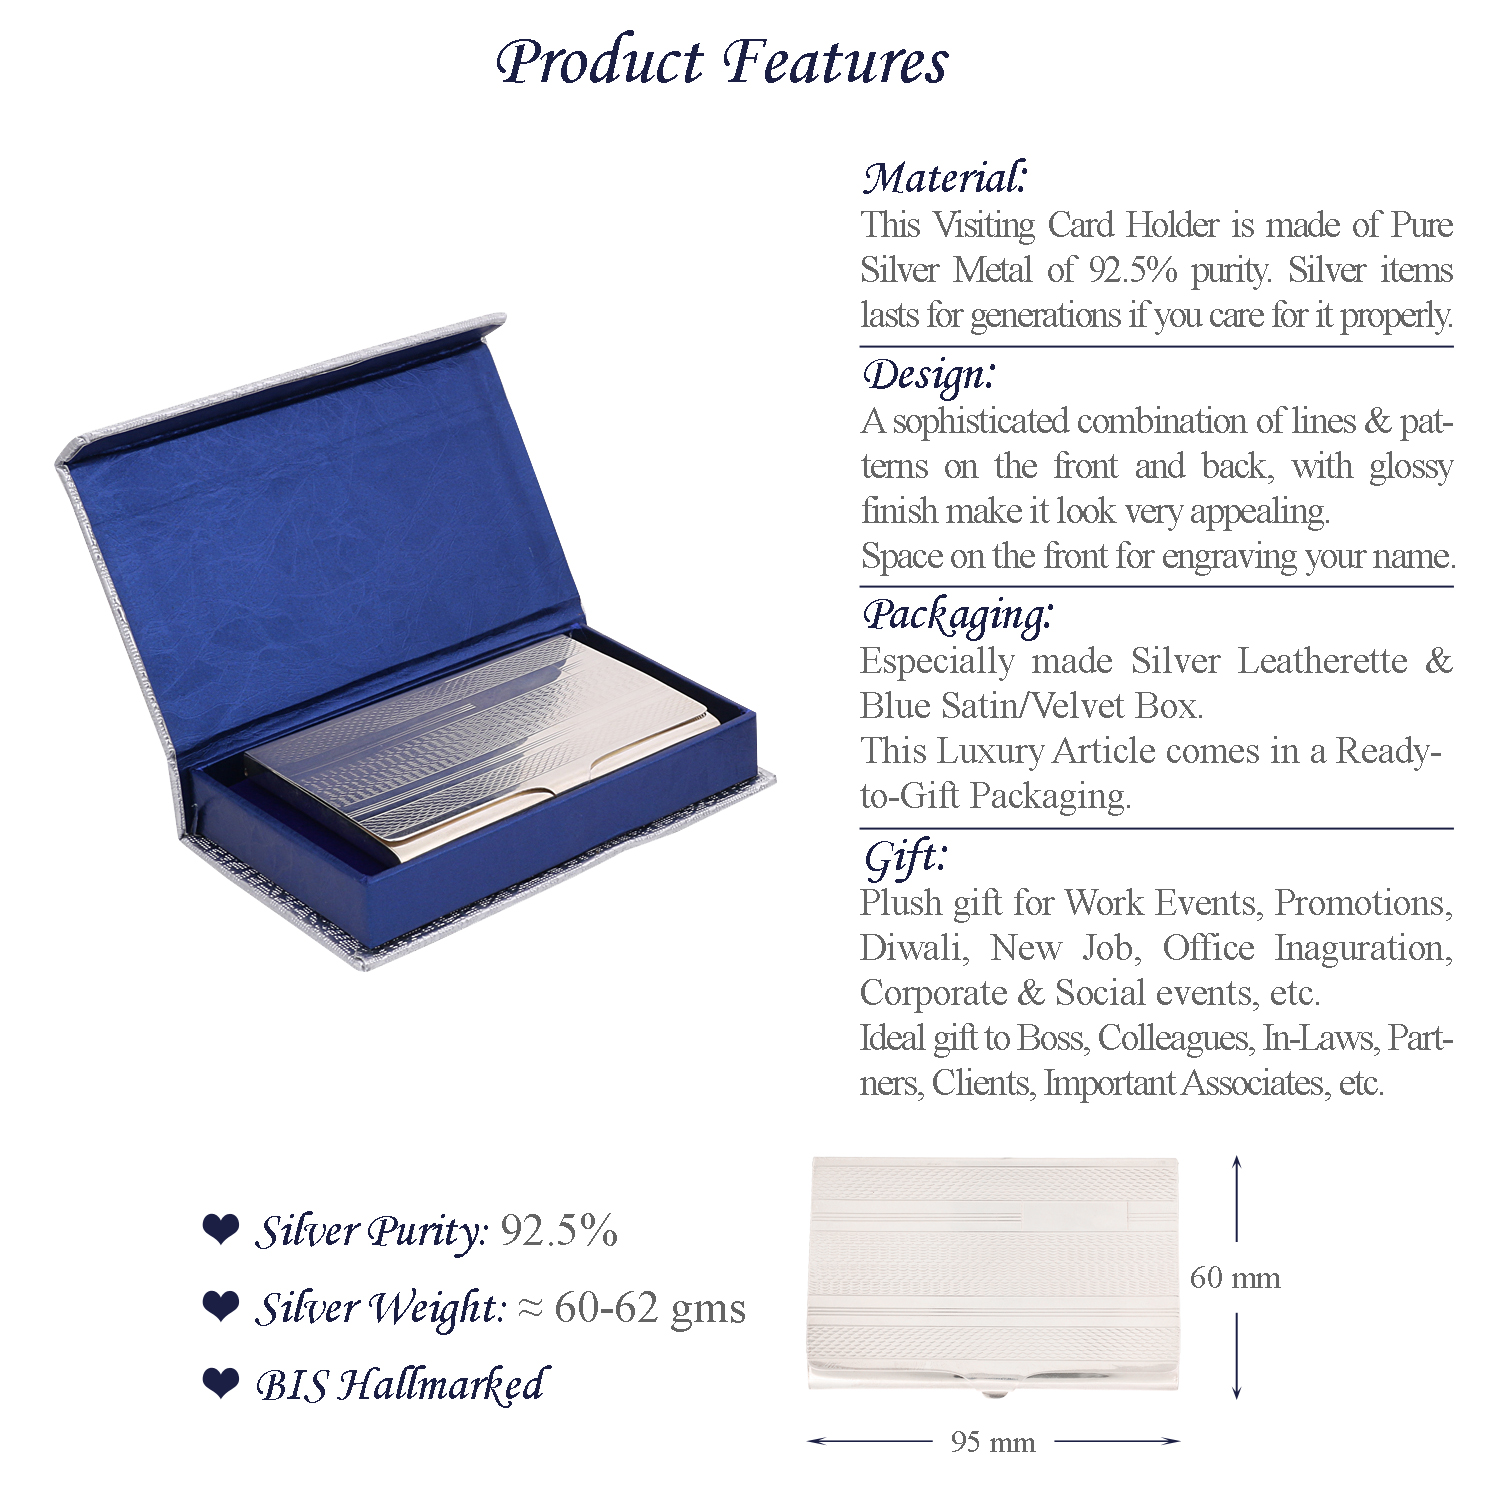 Sterling Silver Card Holder Features